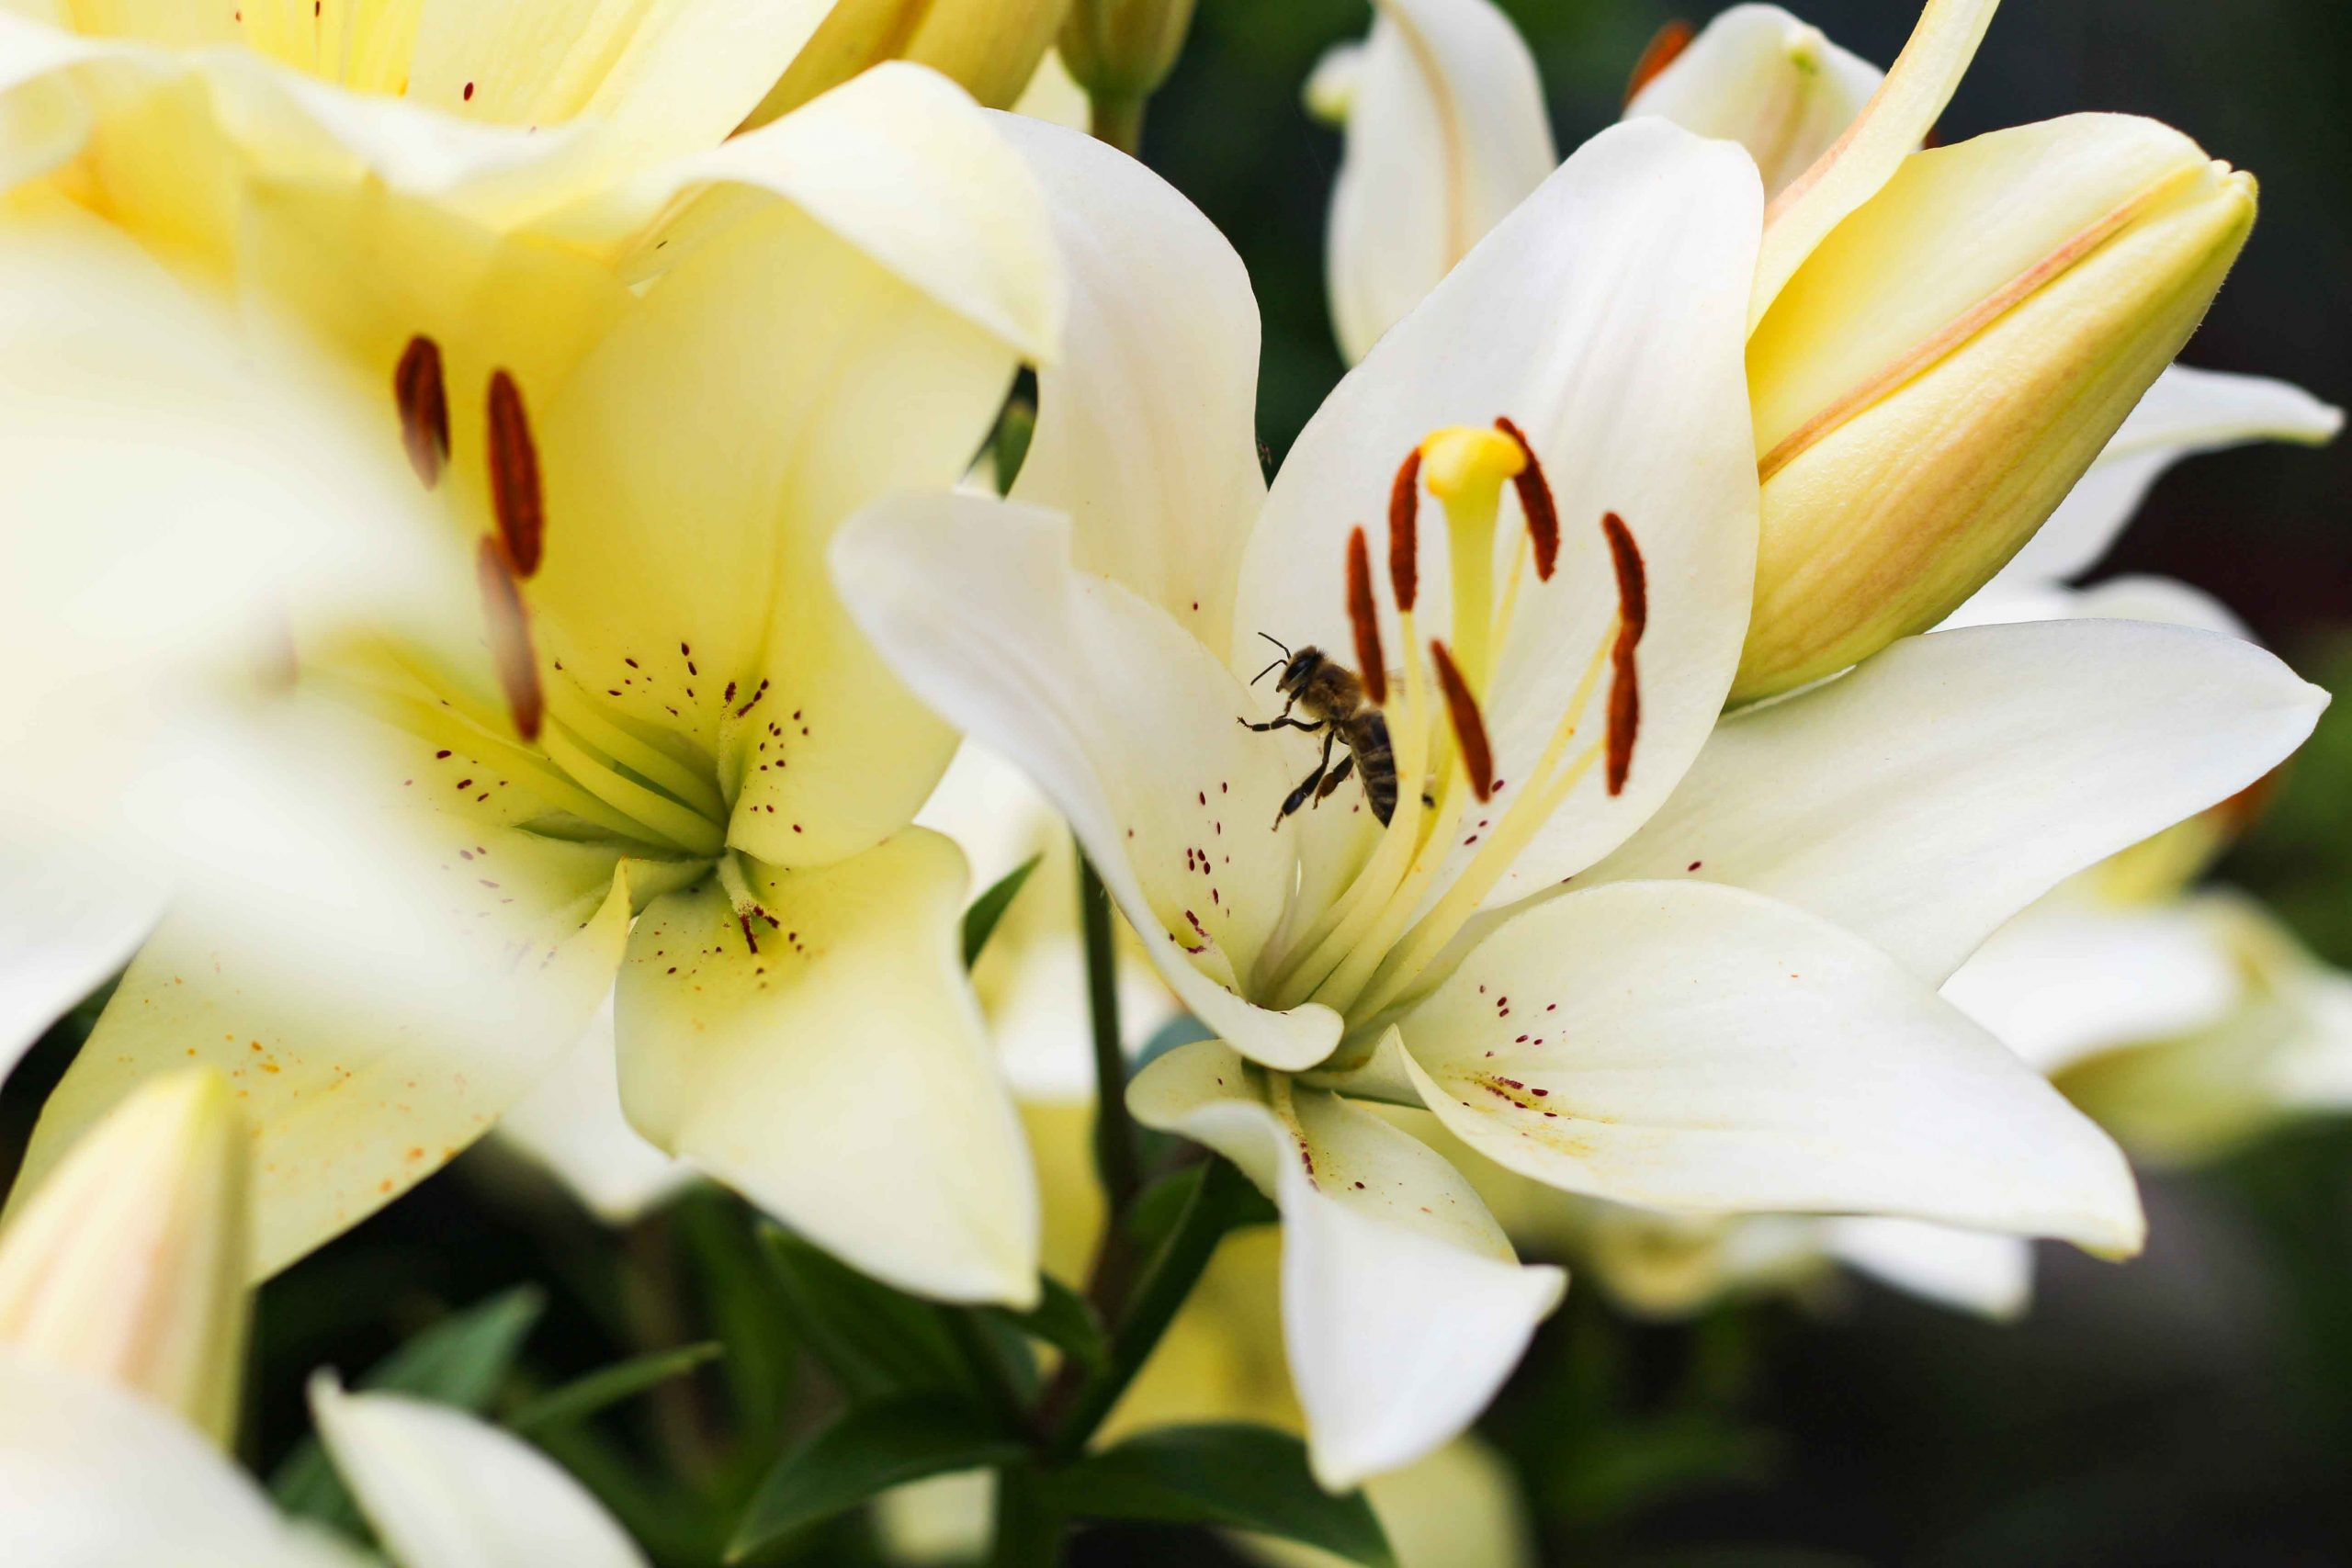 close-up photography of wasp sniffing on petaled flower